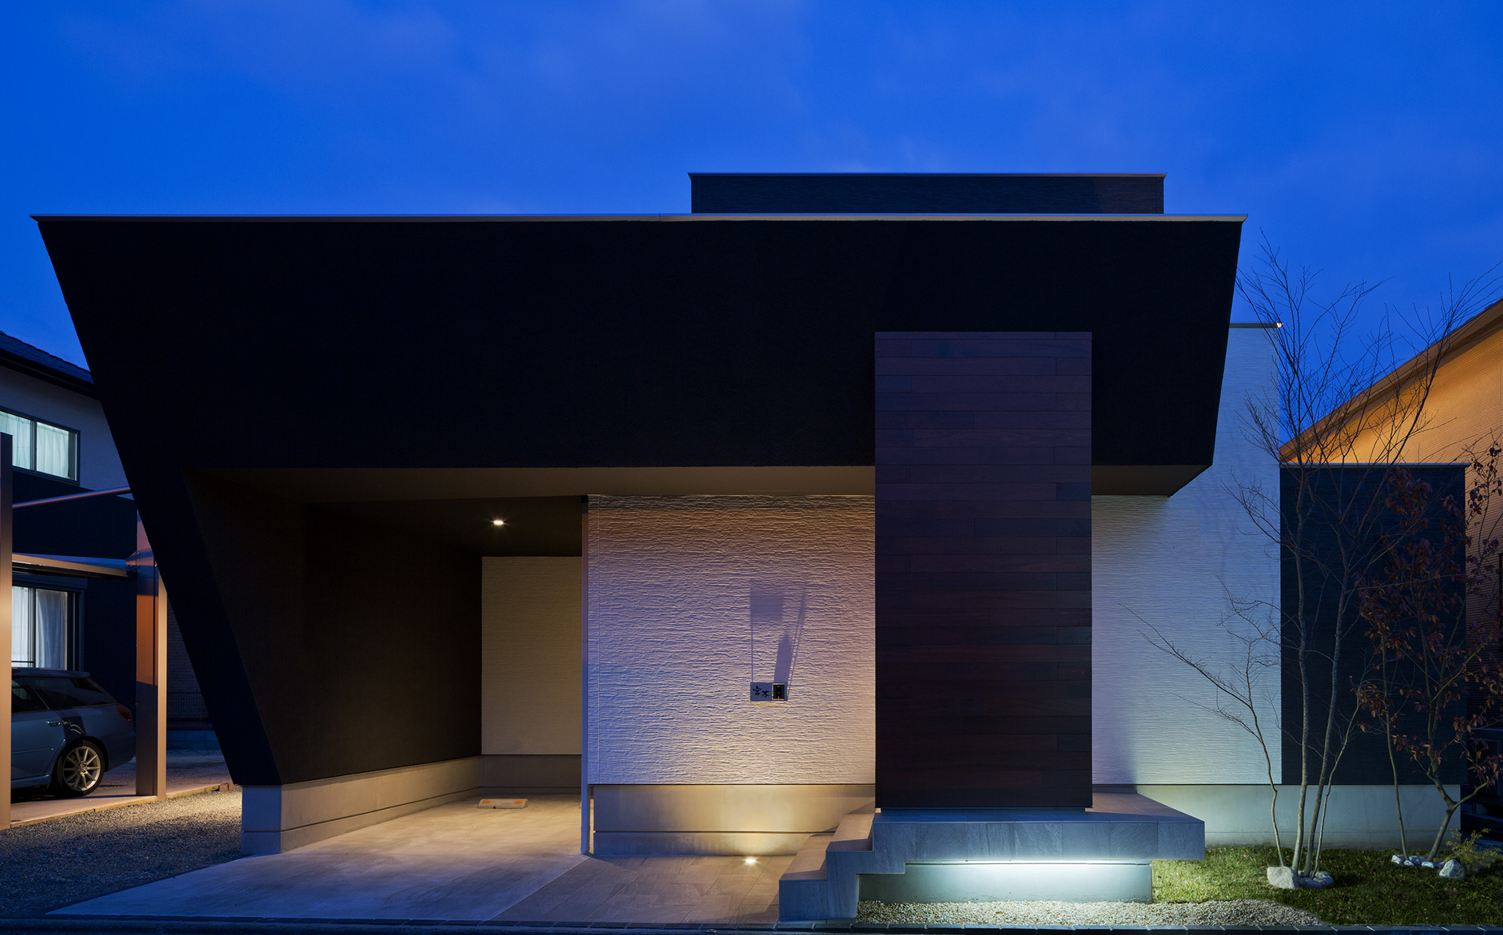 M6-House in Kumamoto, Japan by Architect Show